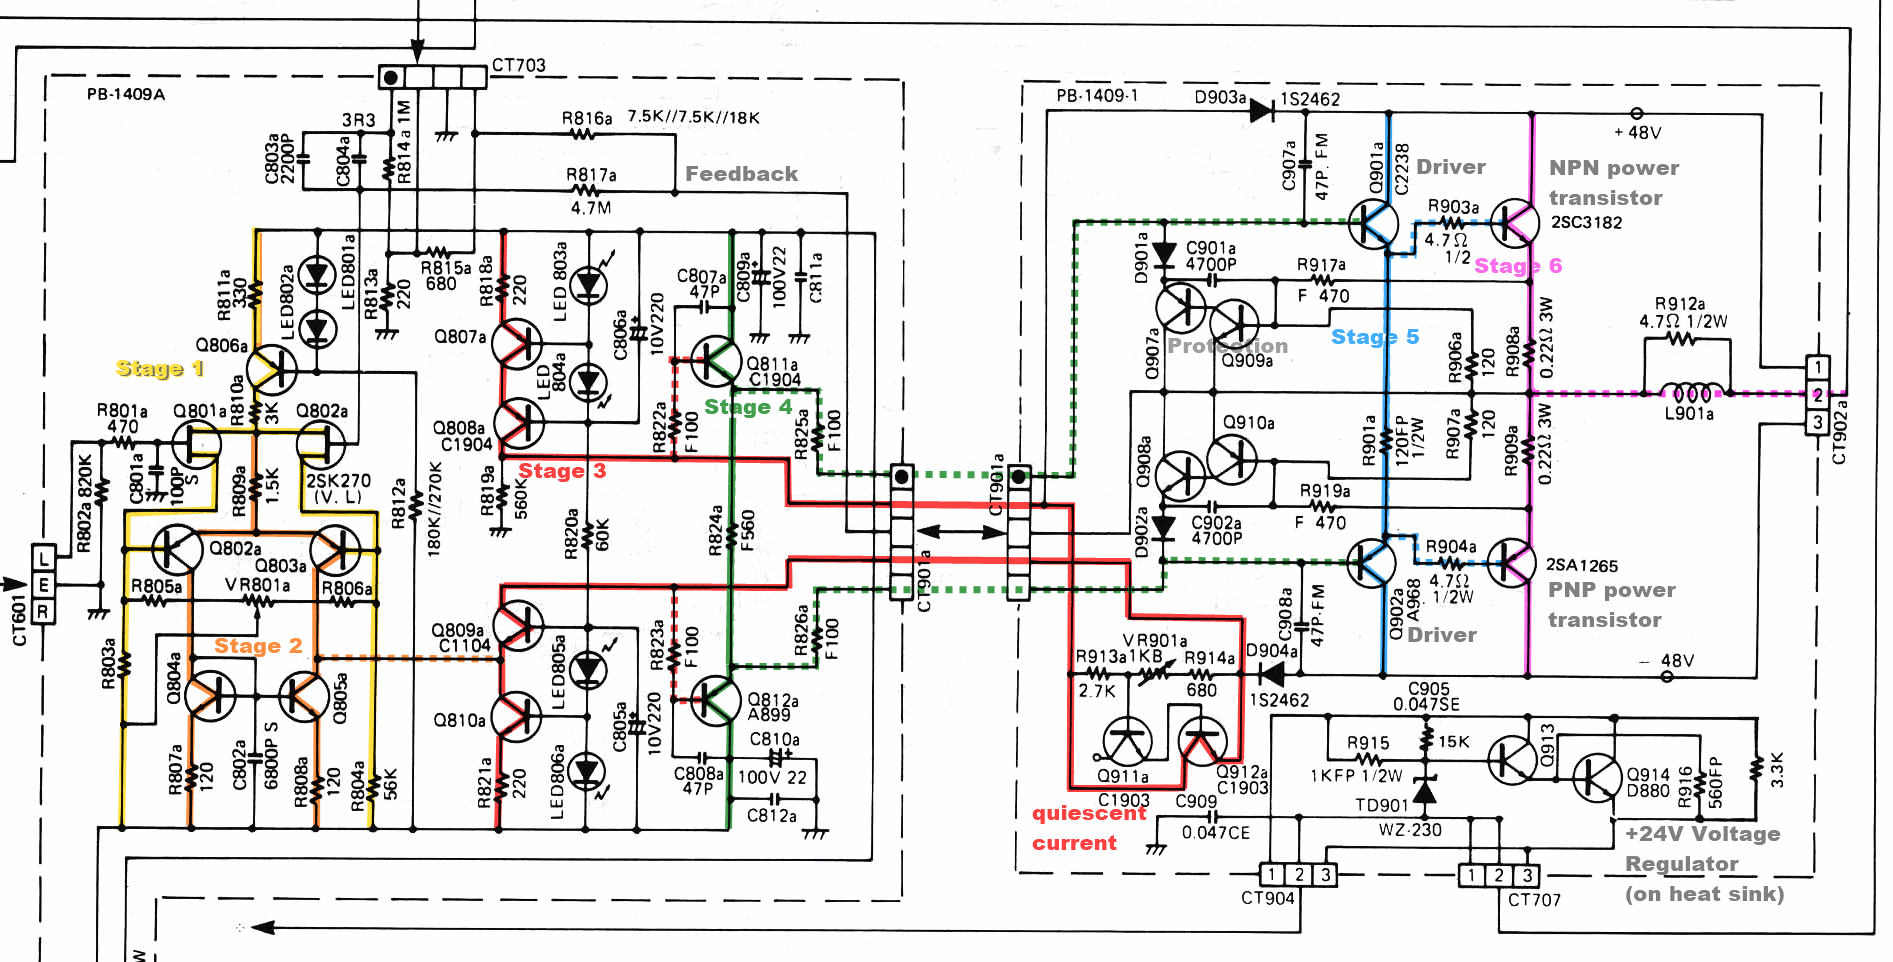 Luxman L410 Power Amp Section Schematic Stages Marked | driver, l410 ...